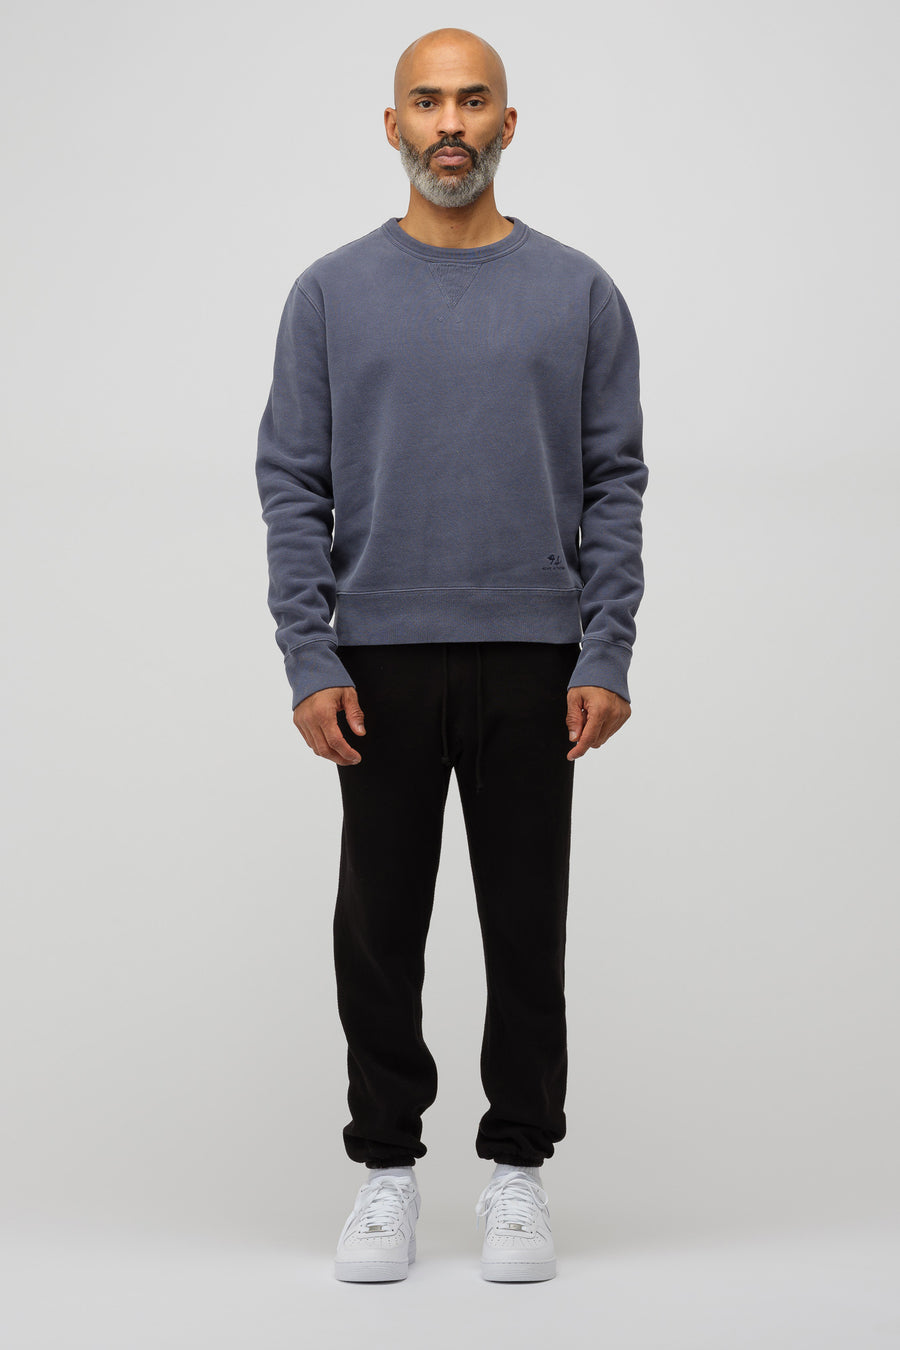 Acne Studios Fidal Embroidered Sweatshirt in Navy Blue - Notre